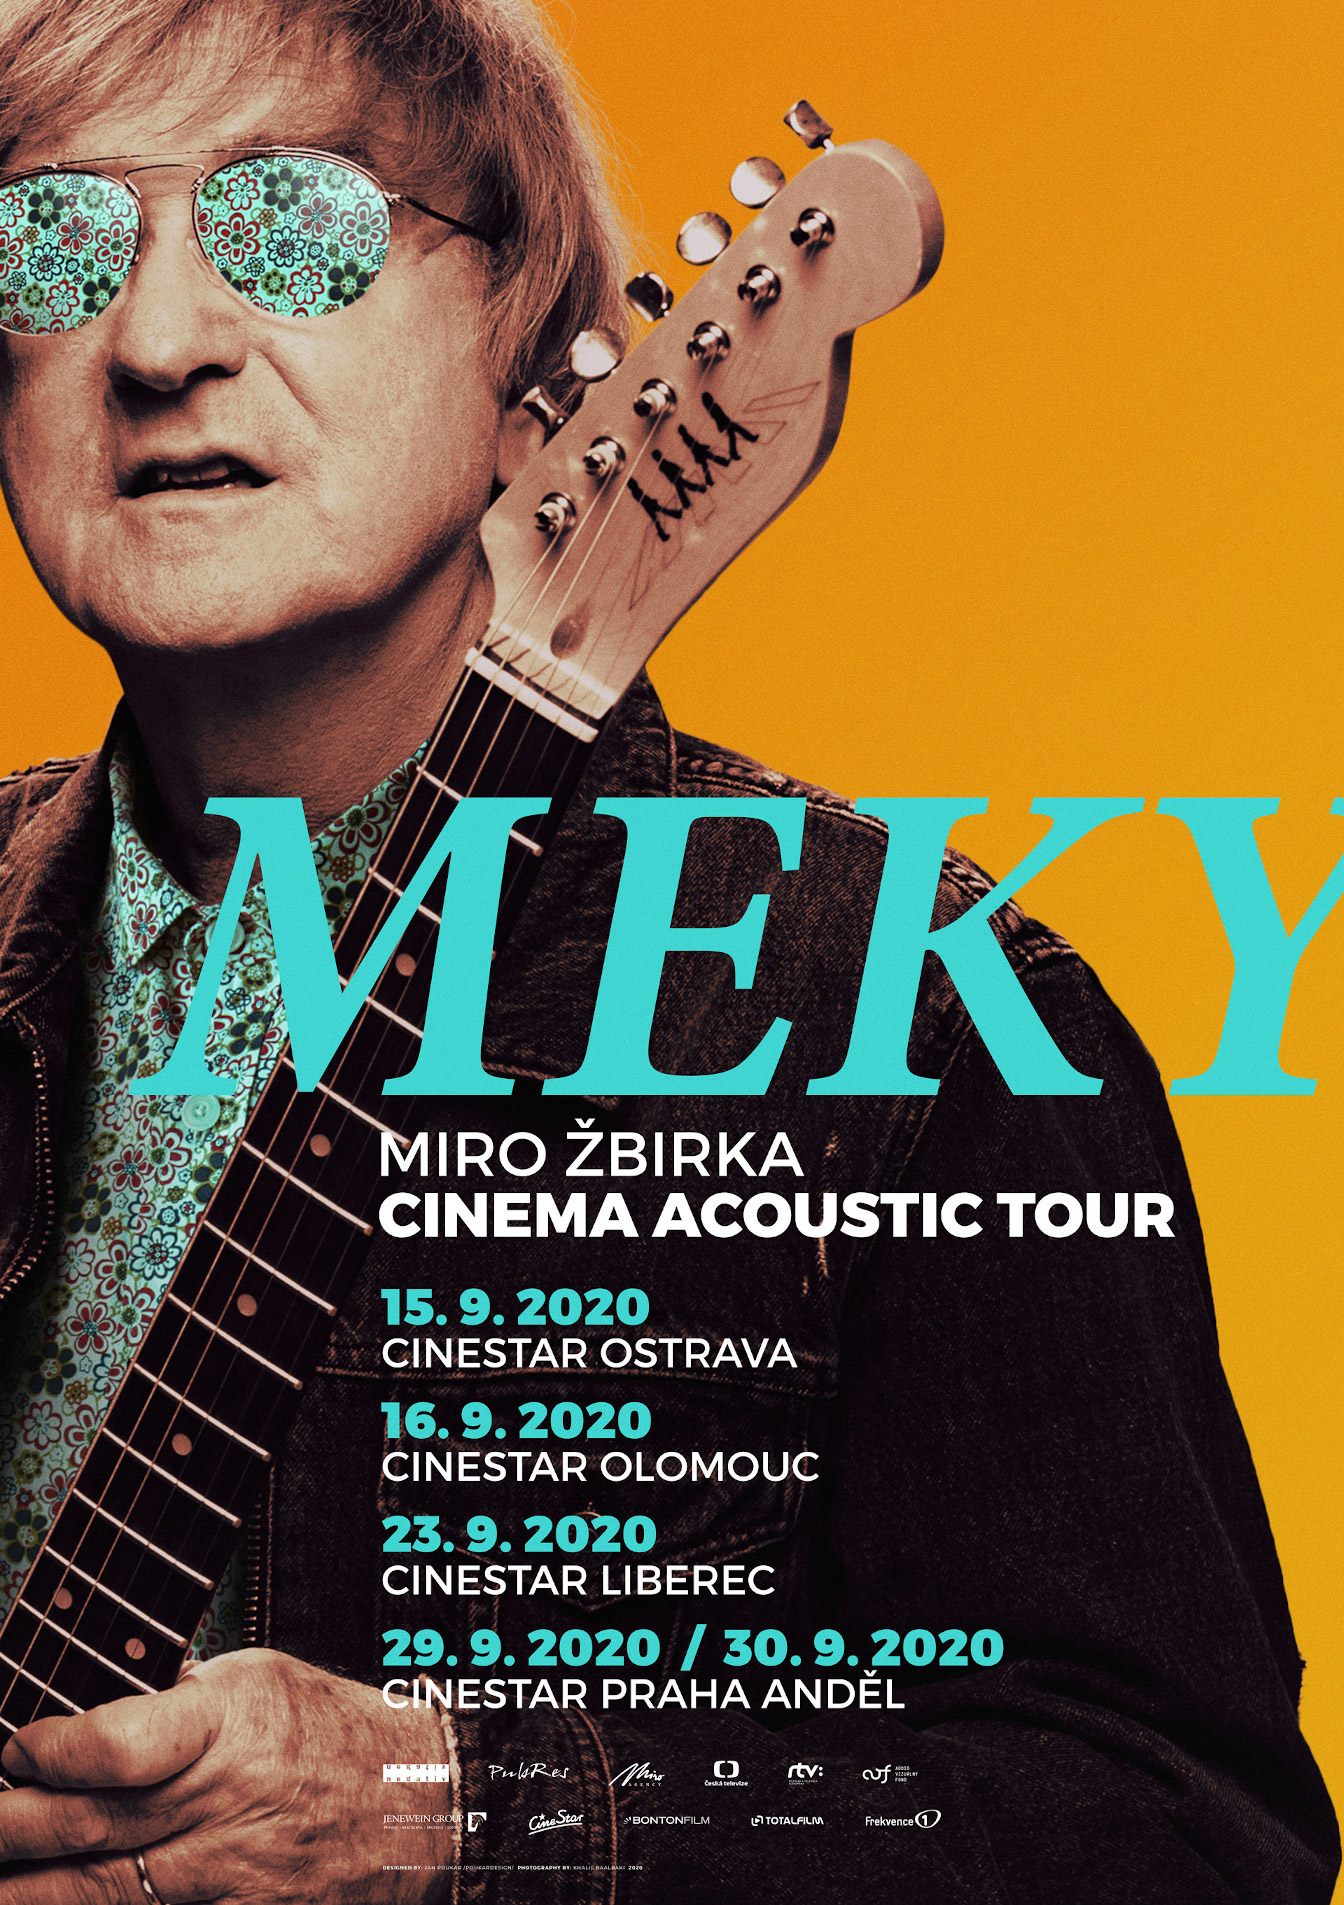 MEKY: CINEMA ACOUSTIC TOUR